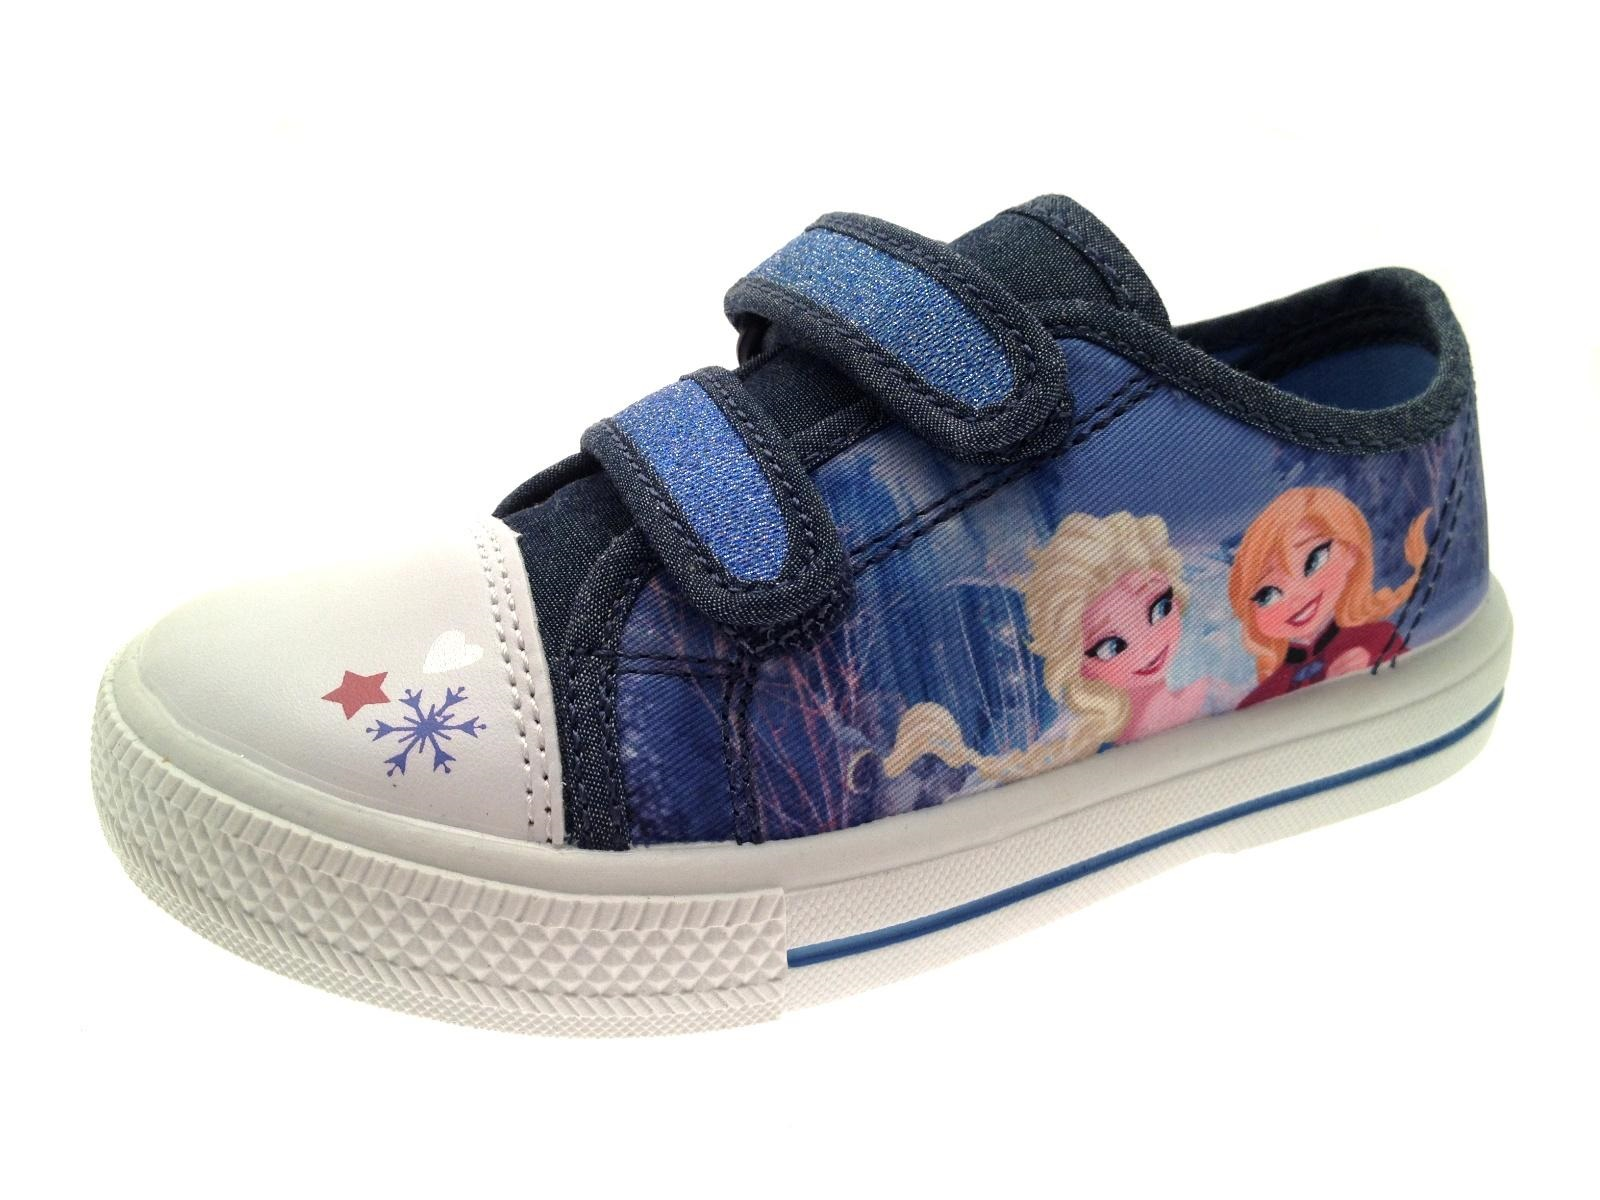 Disney Frozen Canvas Pumps Anna Elsa Flat Shoes Trainers Childrens Size 6-12